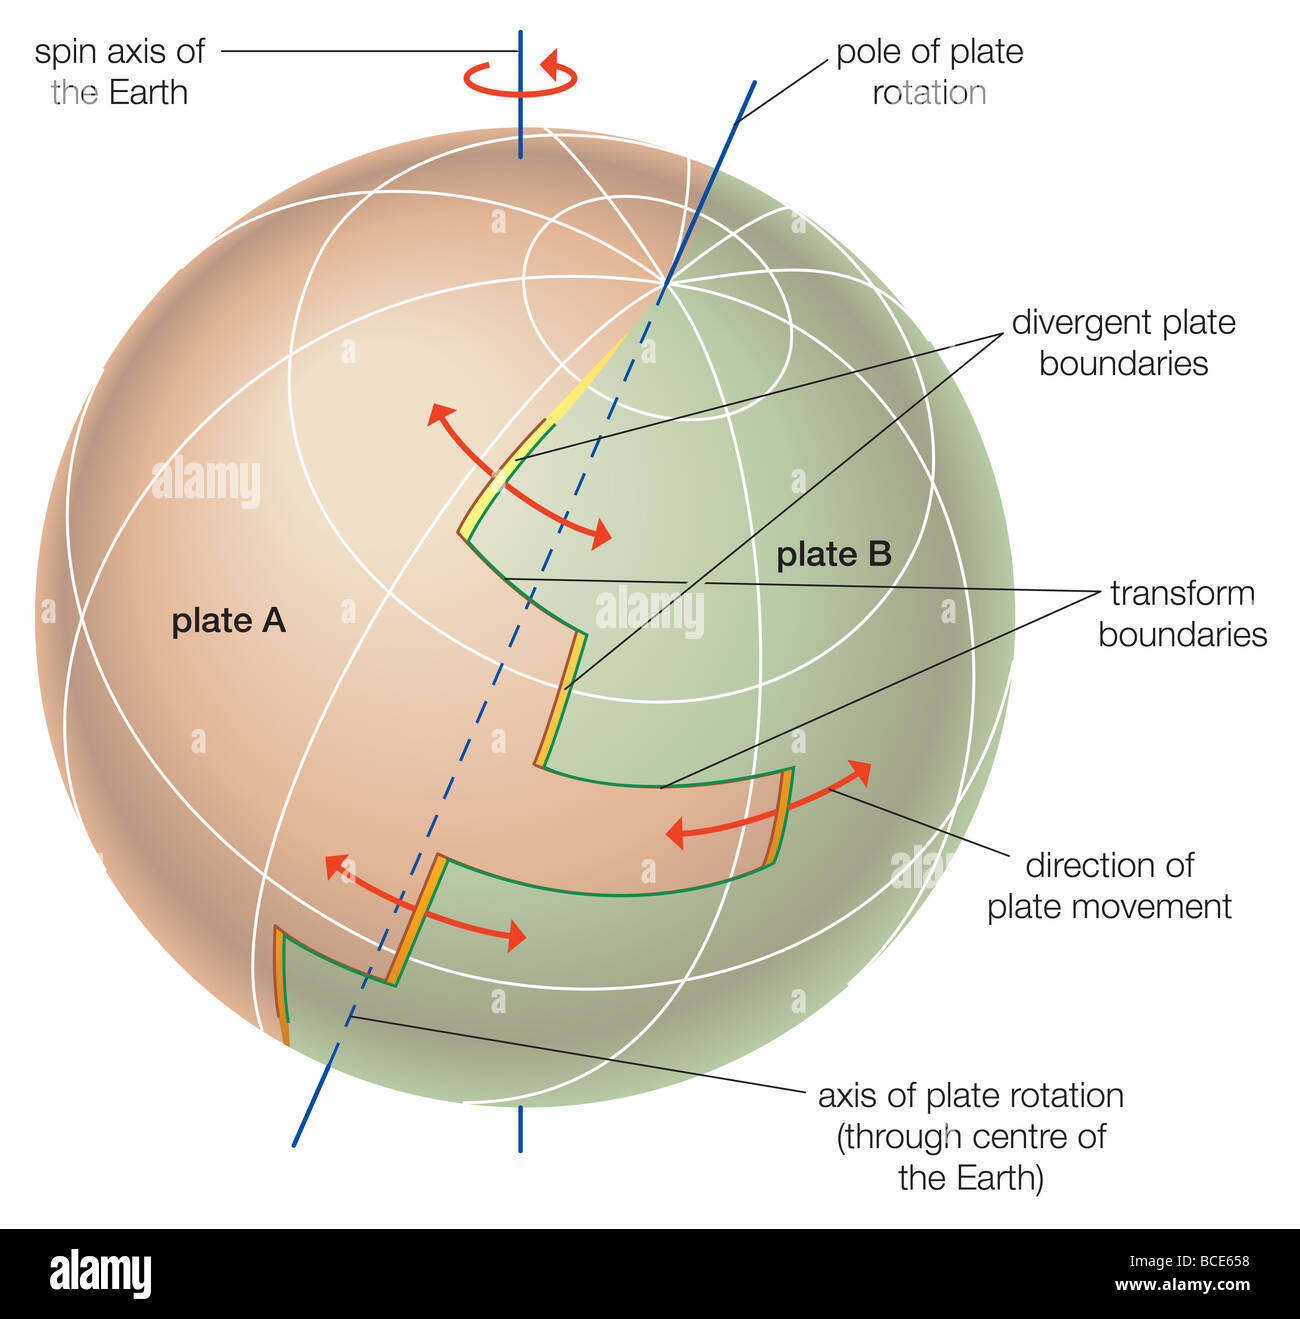 Theoretical depiction of the movement of tectonic plates across Earth's surface. - Stock Image